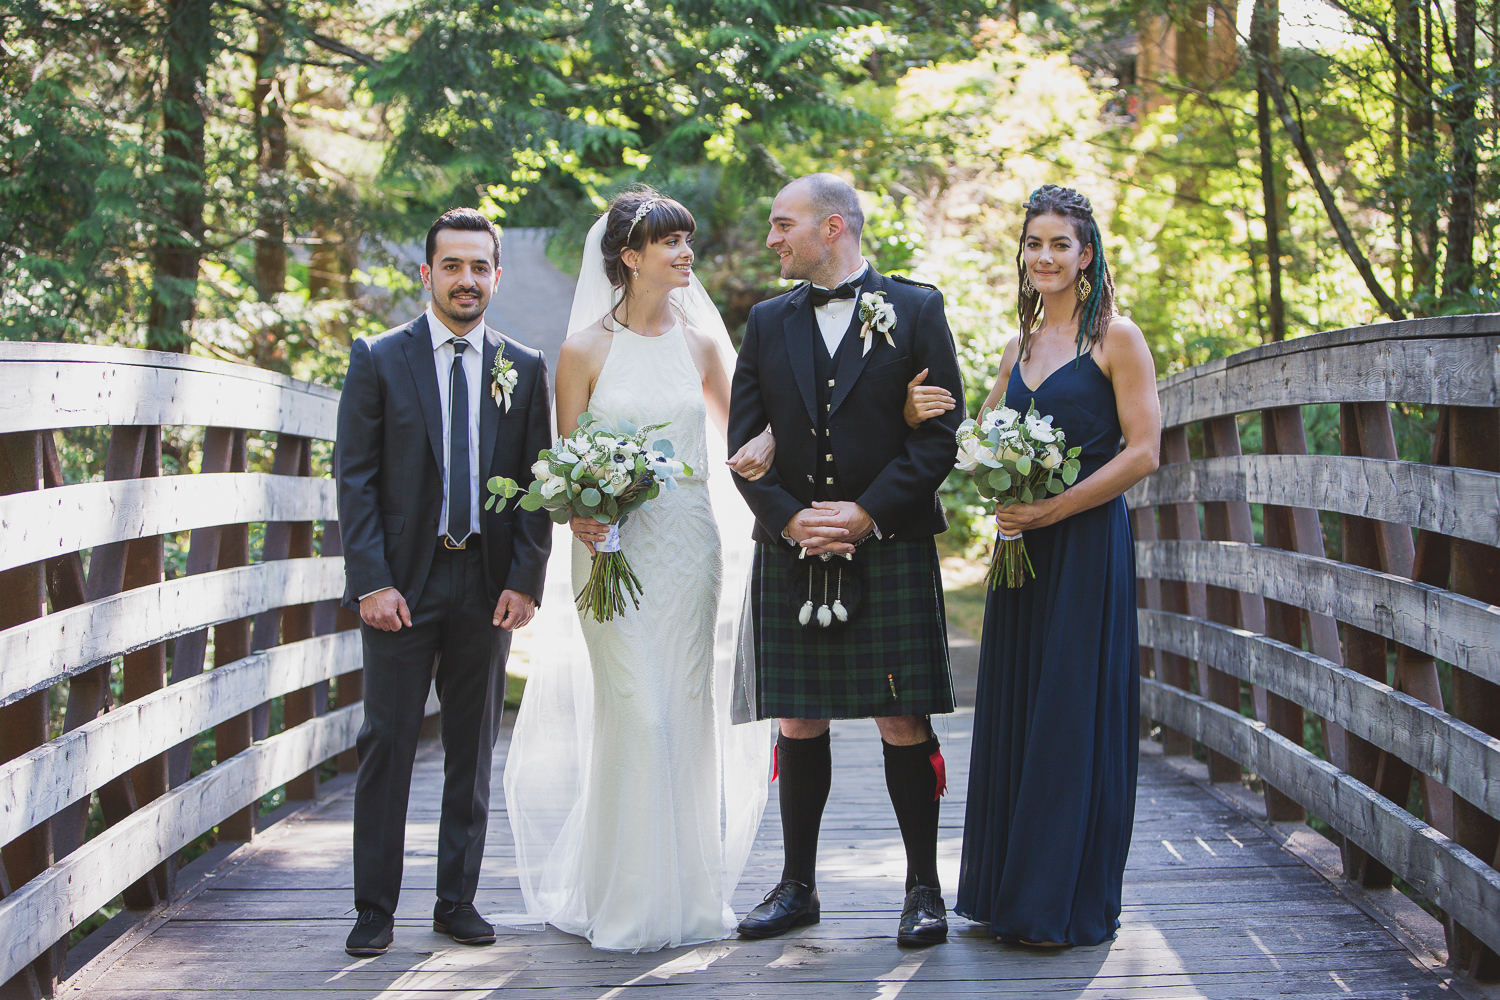 Wedding Party portraits at Furry Creek in Squamish